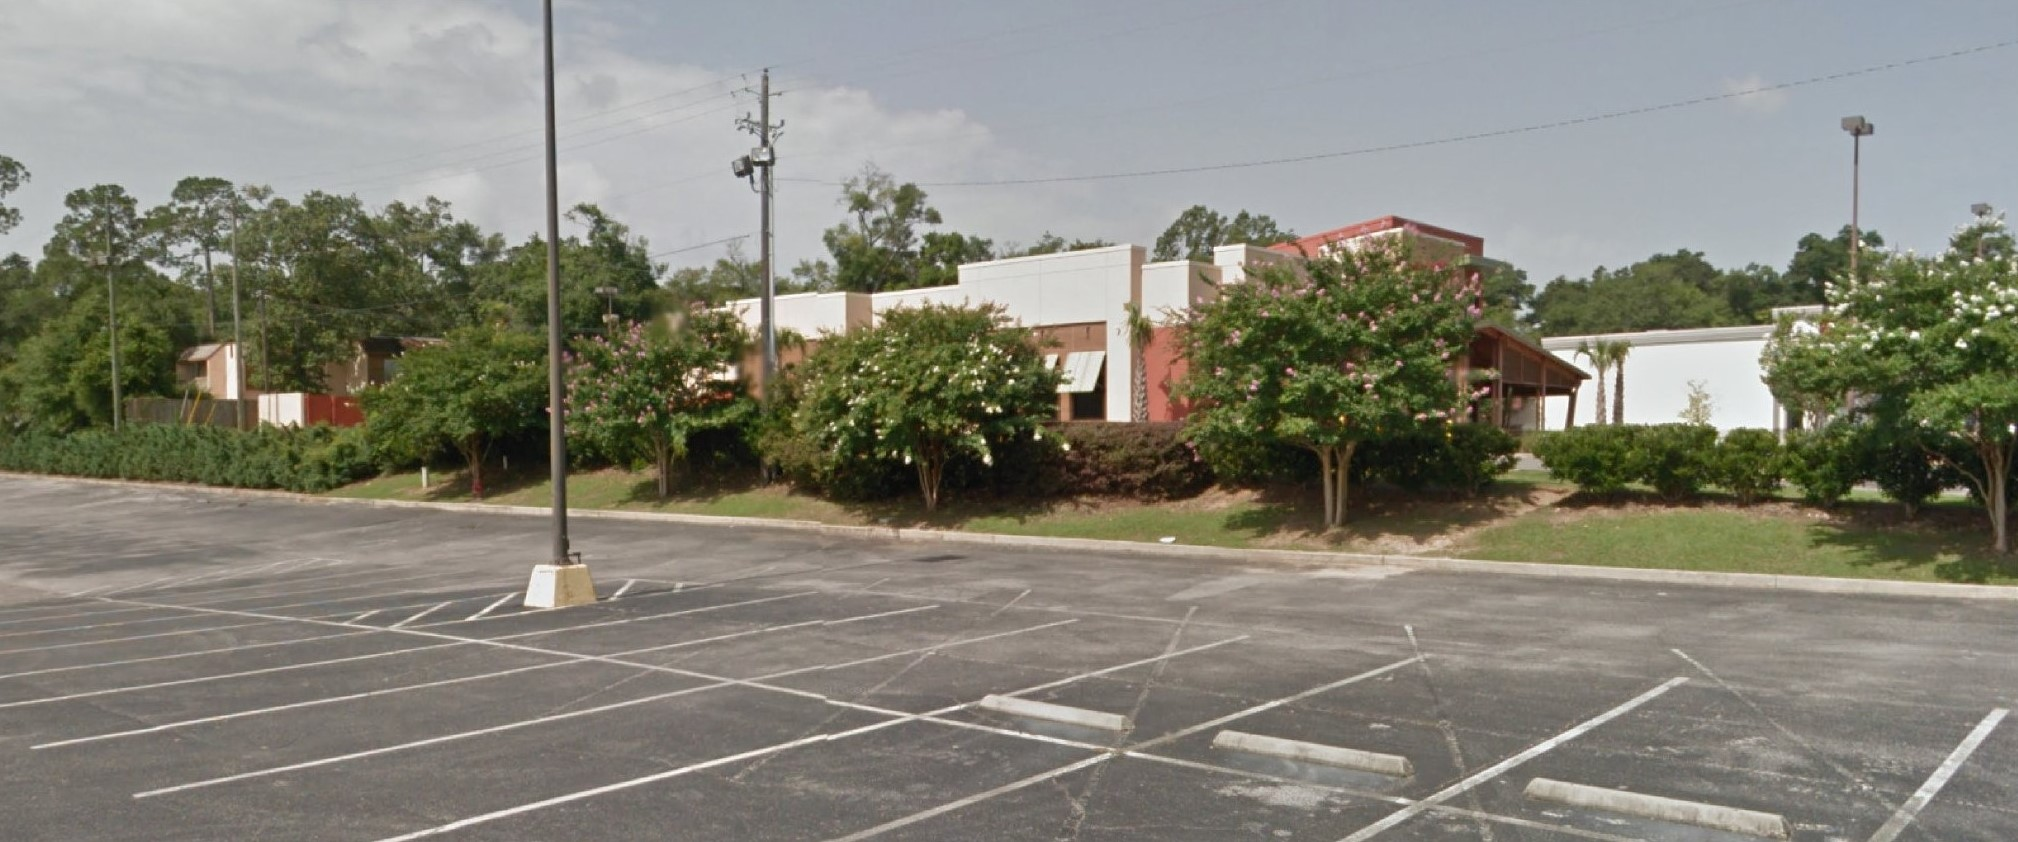 Outback Steakhouse Mobile - Airport Blvd, Mobile, Alabama - Rated 5 based on 1 Review